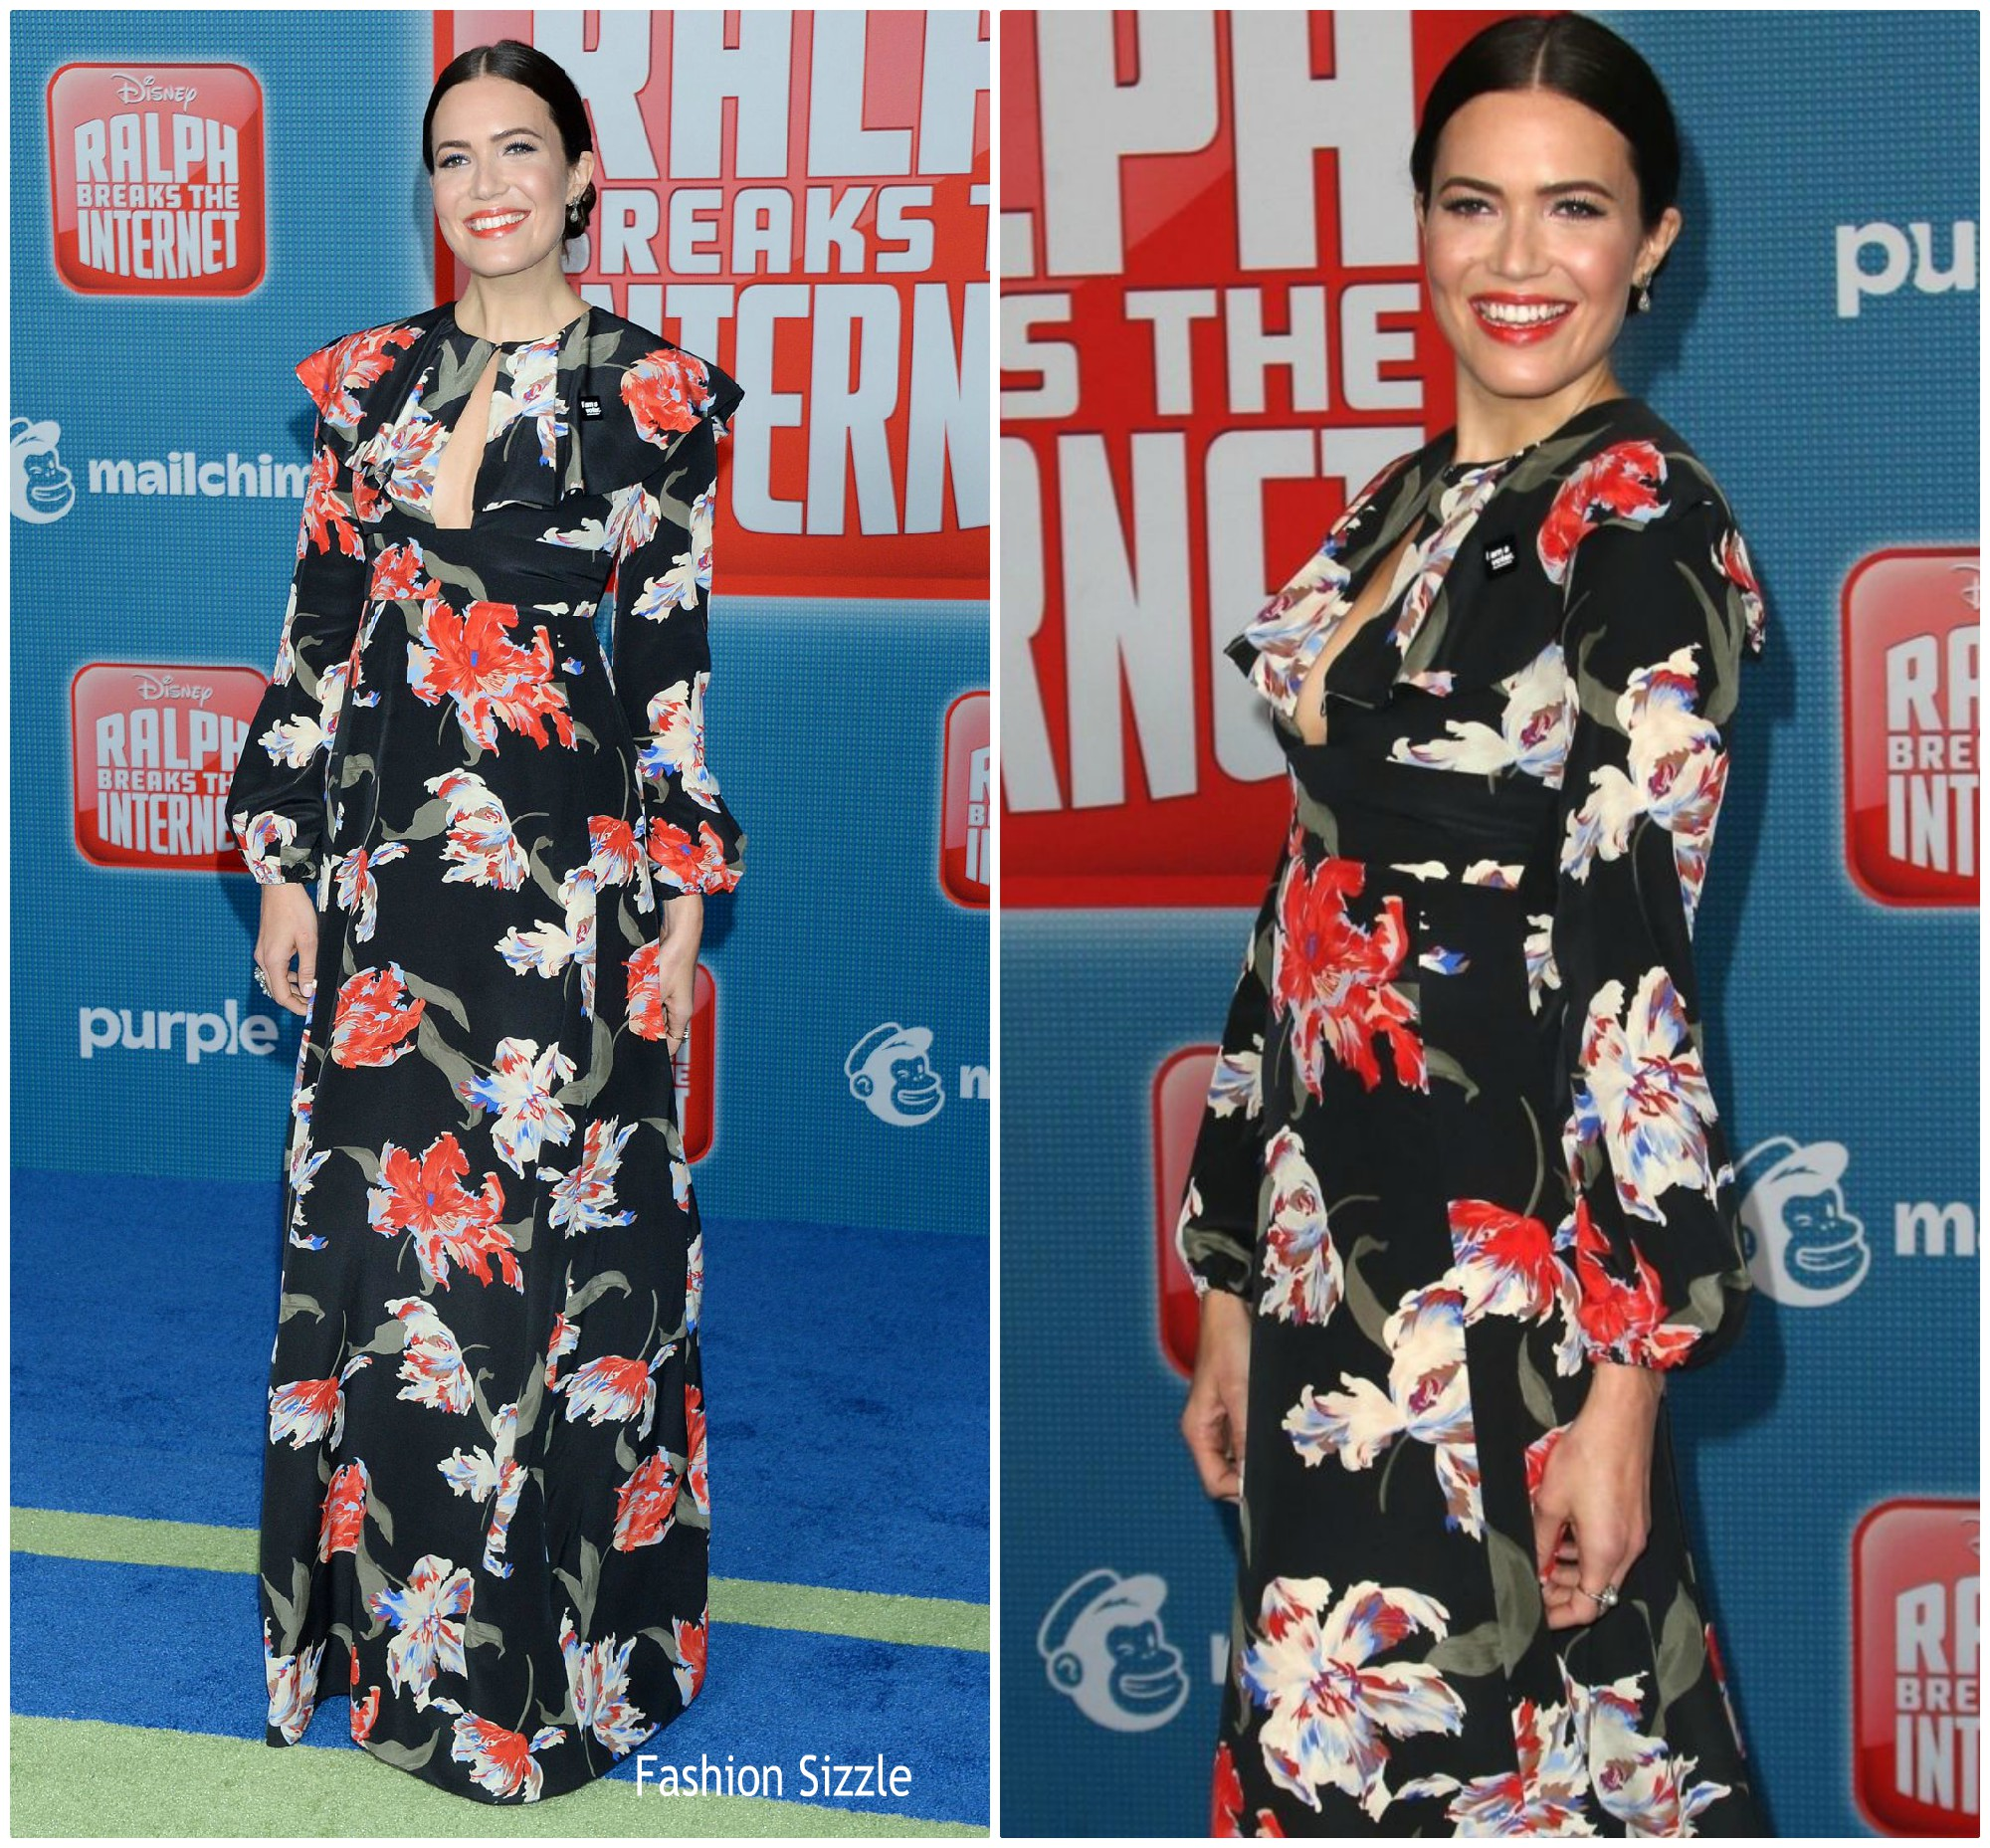 mandy-moore-in-rochas-ralph-braks-the-internet-la-premiere